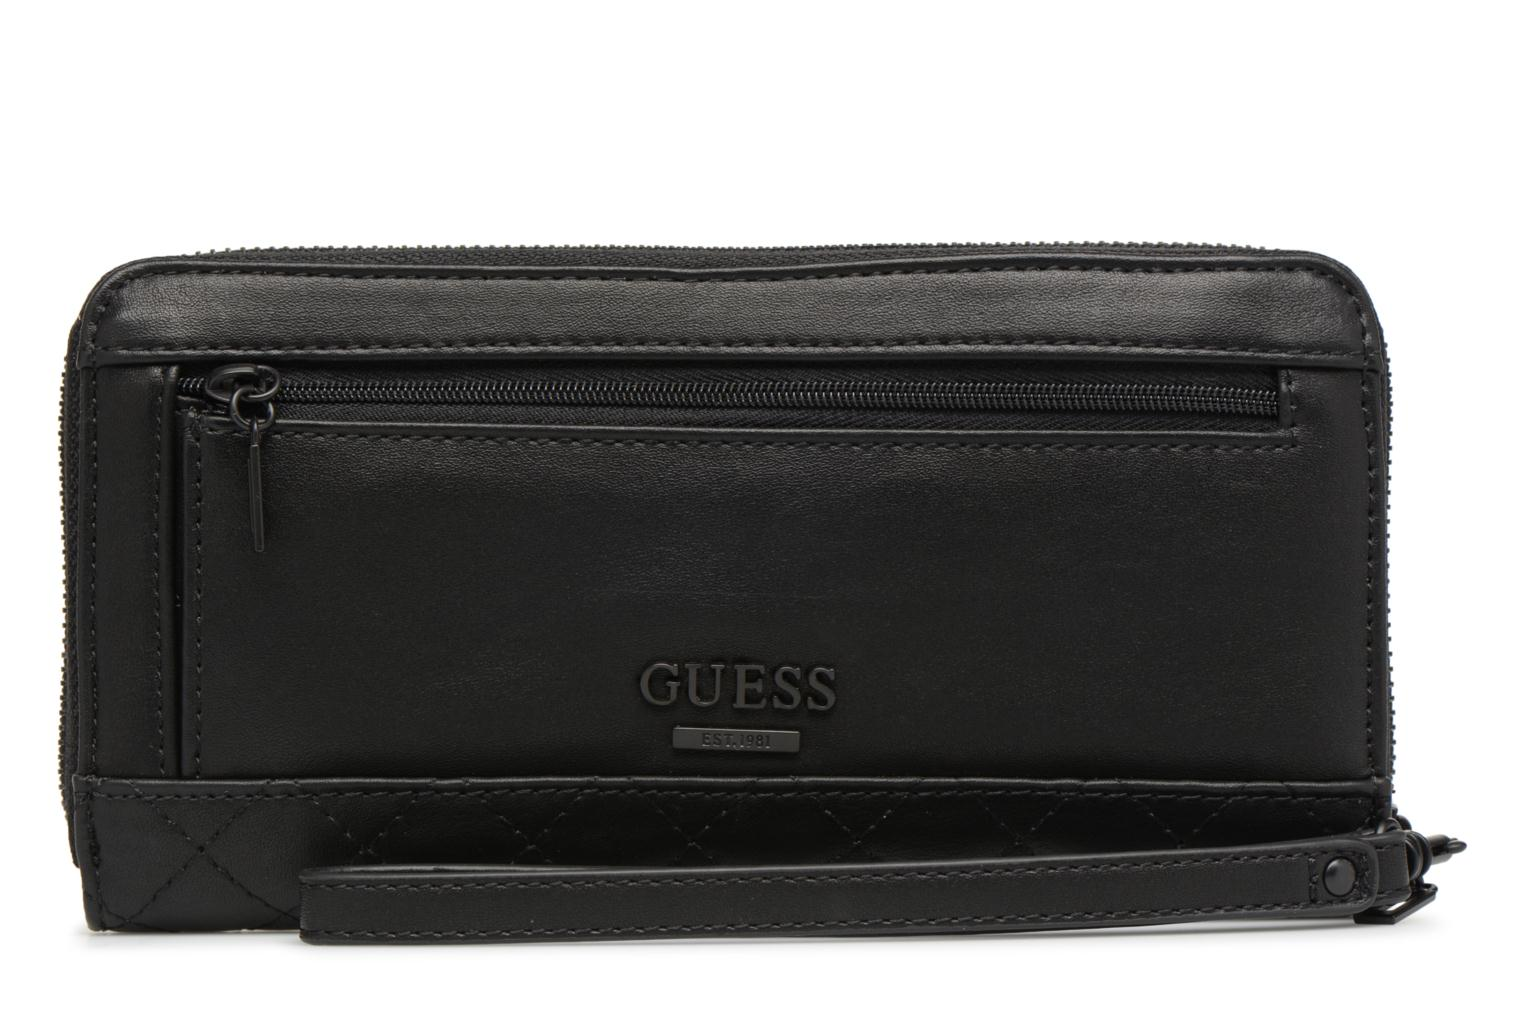 Guess G Around Large Lux Black Zip f7f6vwxq